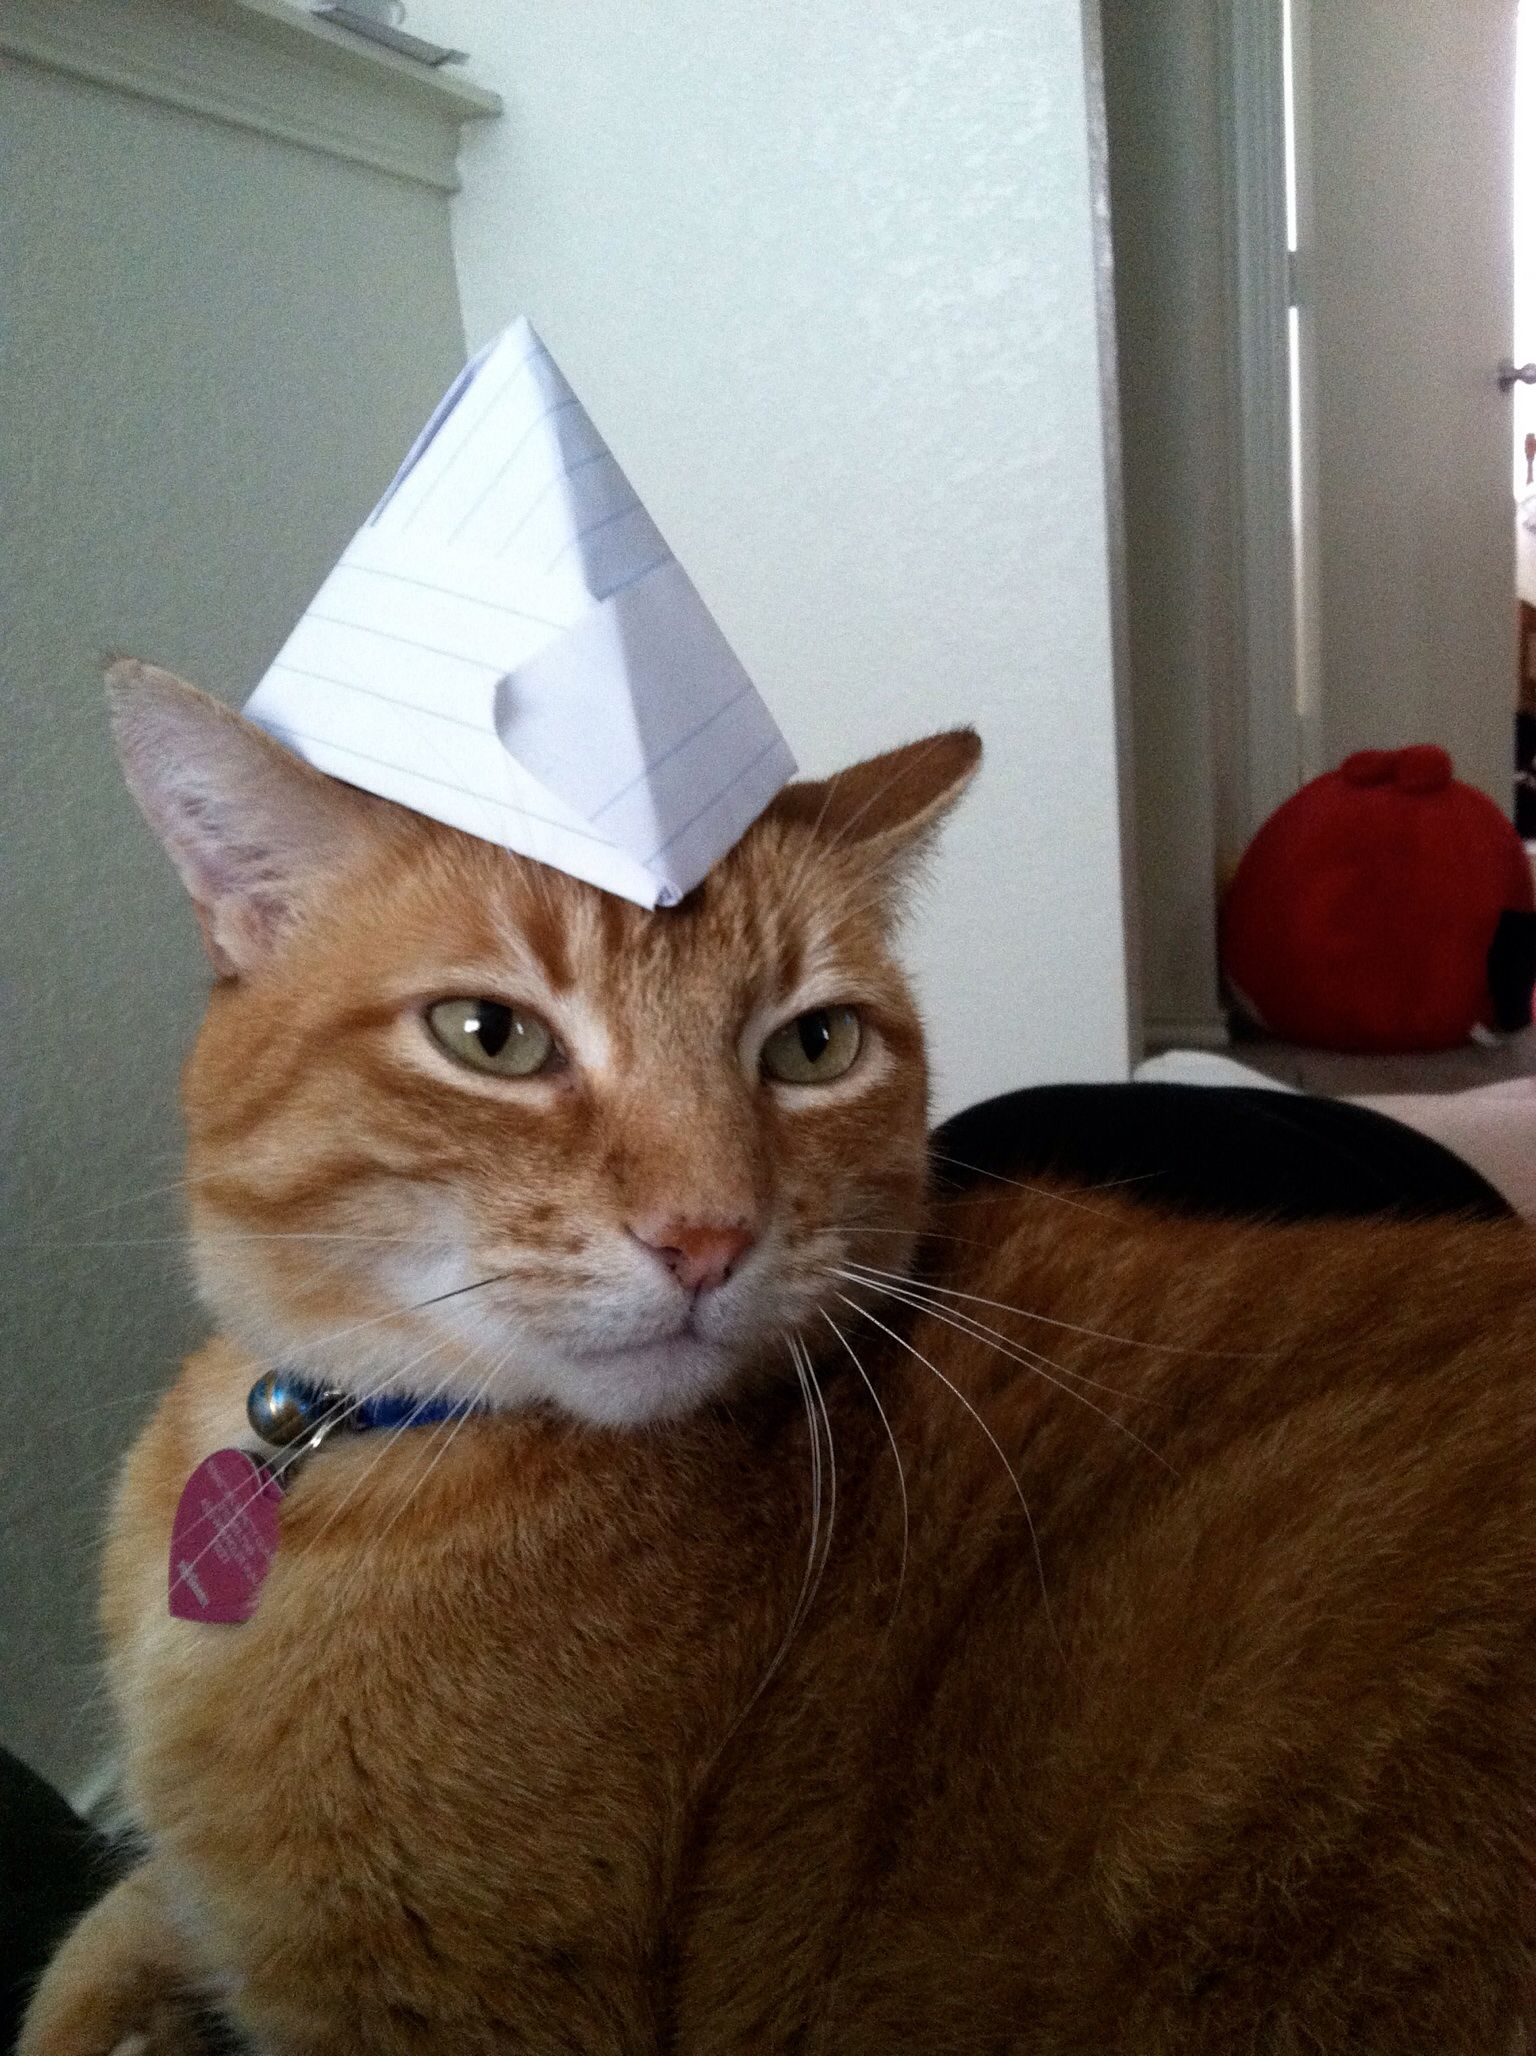 Nice Paper Hat Funnycats Cats With Hats Pet Costumes Cat Costumes